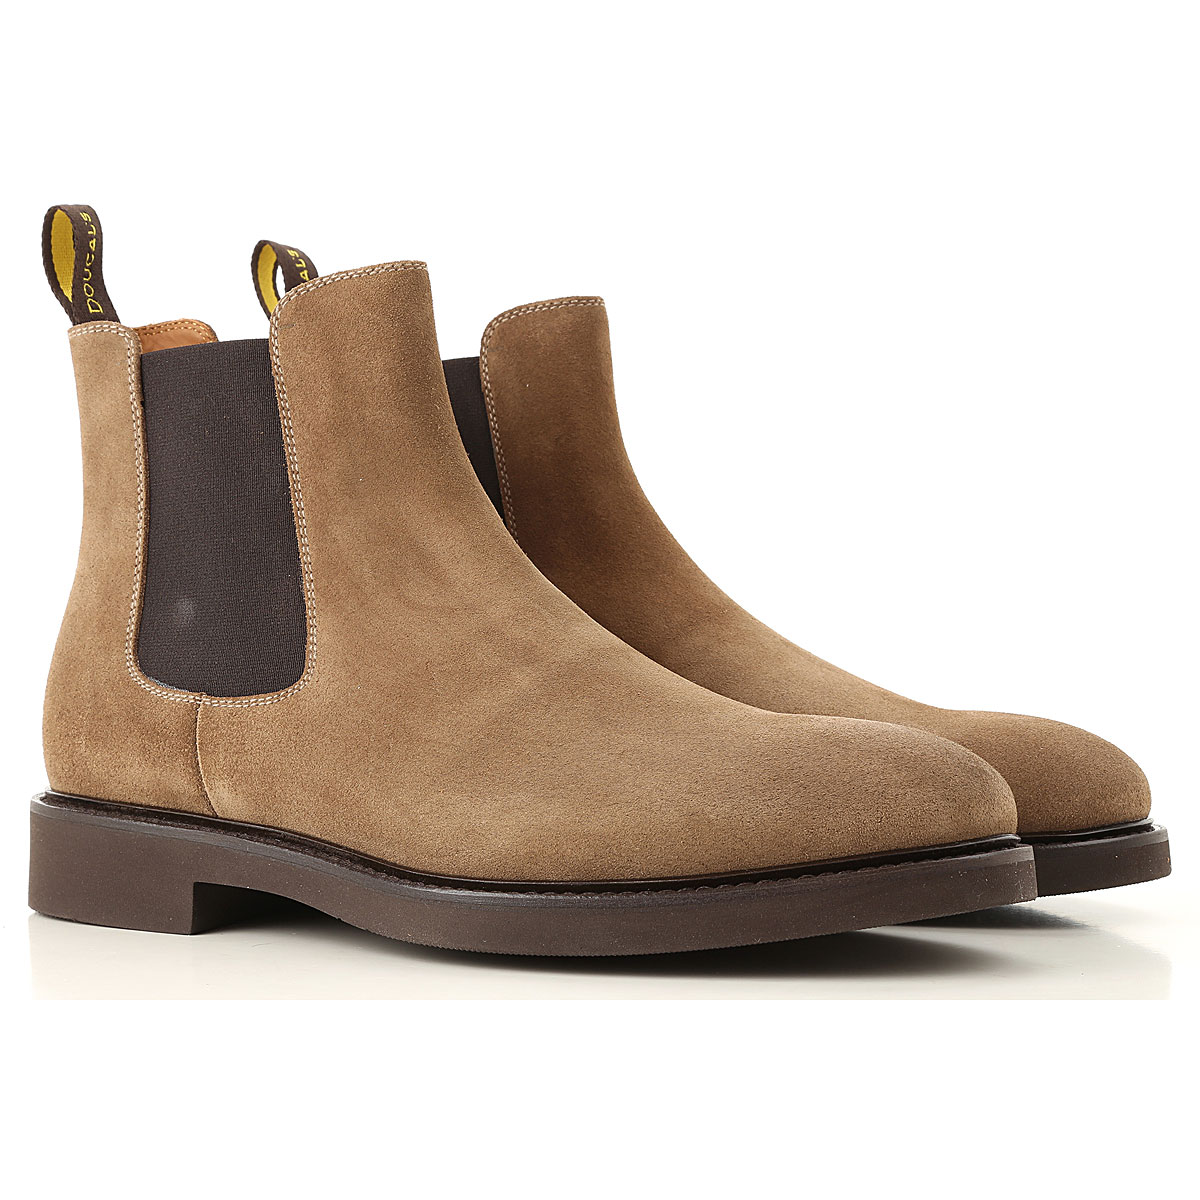 Image of Doucals Chelsea Boots for Men, Mink, Suede leather, 2017, 10 10.5 7.5 8 9